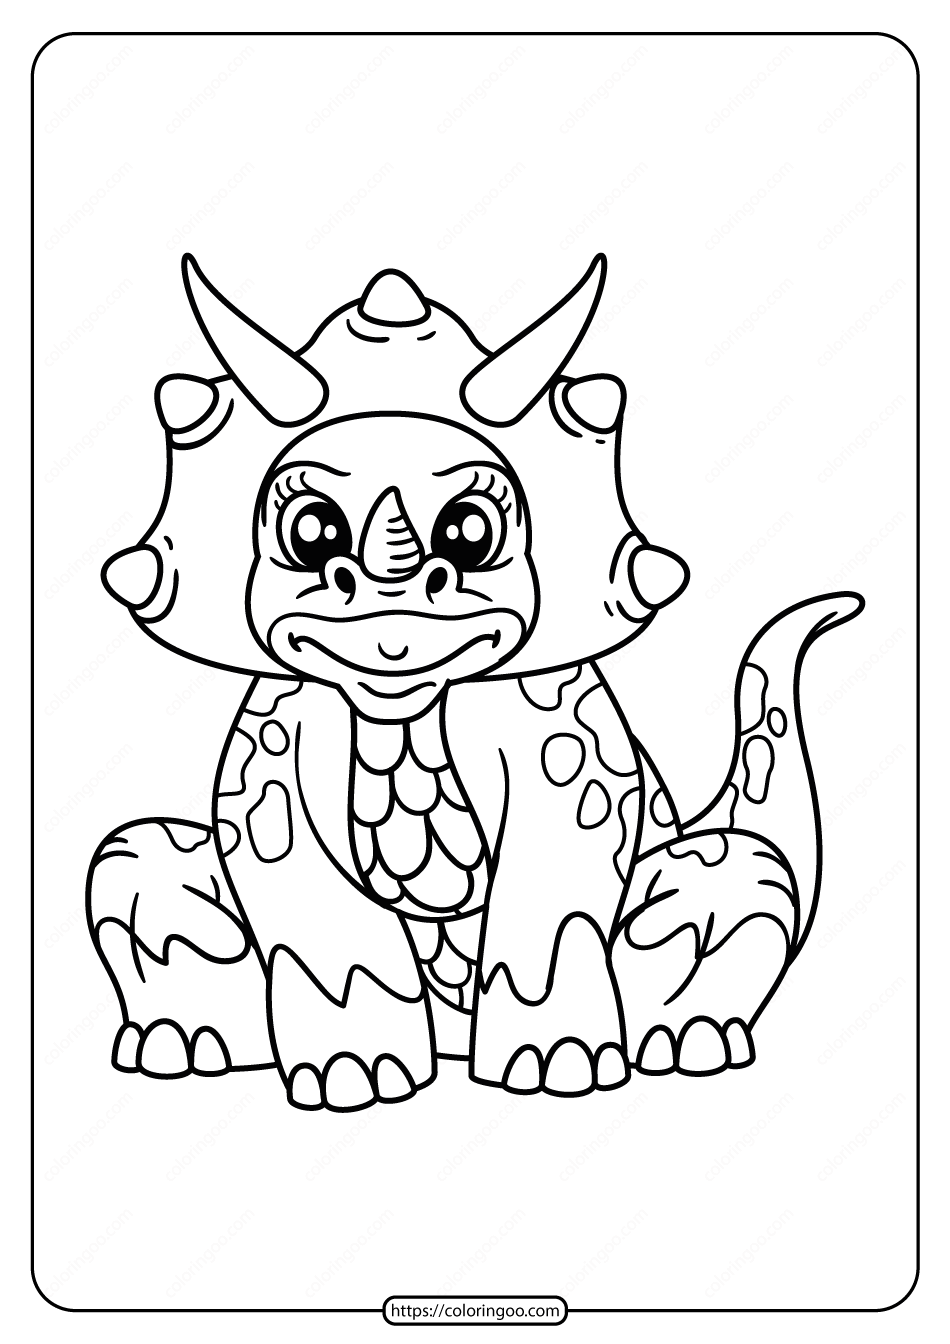 free downloadable coloring pages free printable puppies coloring pages for kids free downloadable coloring pages